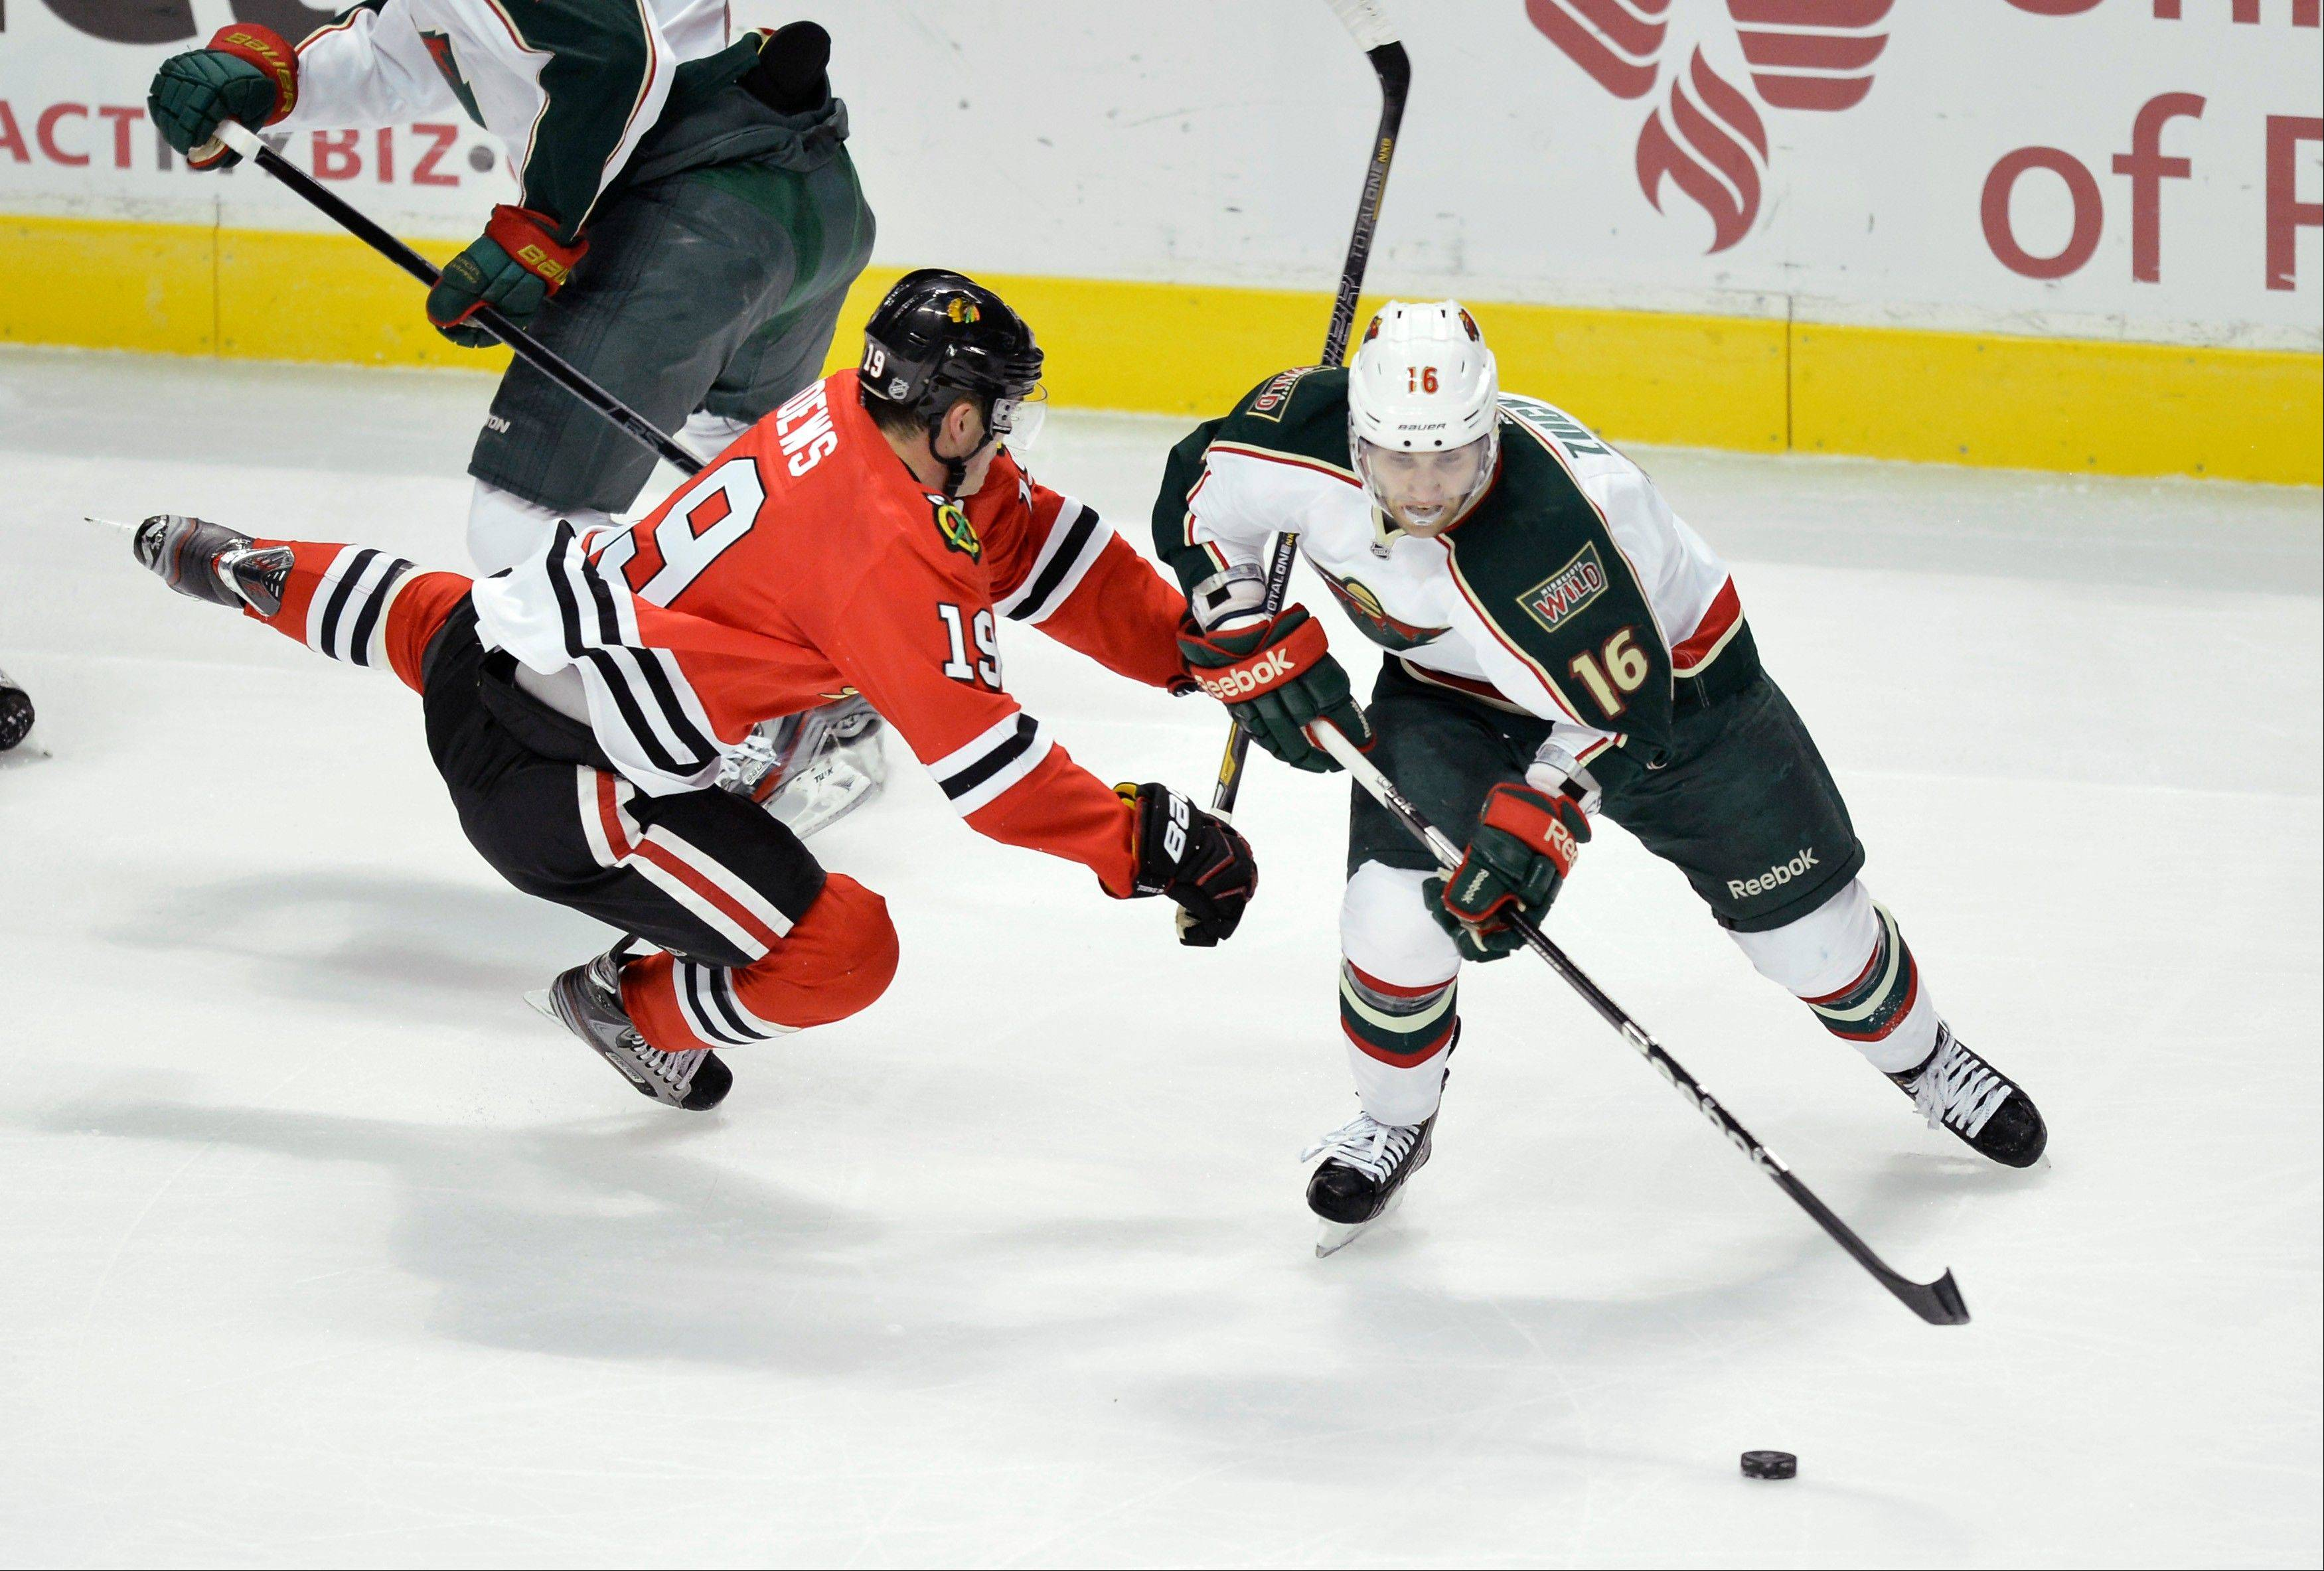 Blackhawks center Jonathan Toews, left, falls as Minnesota Wild left wing Jason Zucker skates with the puck during the first period last night.